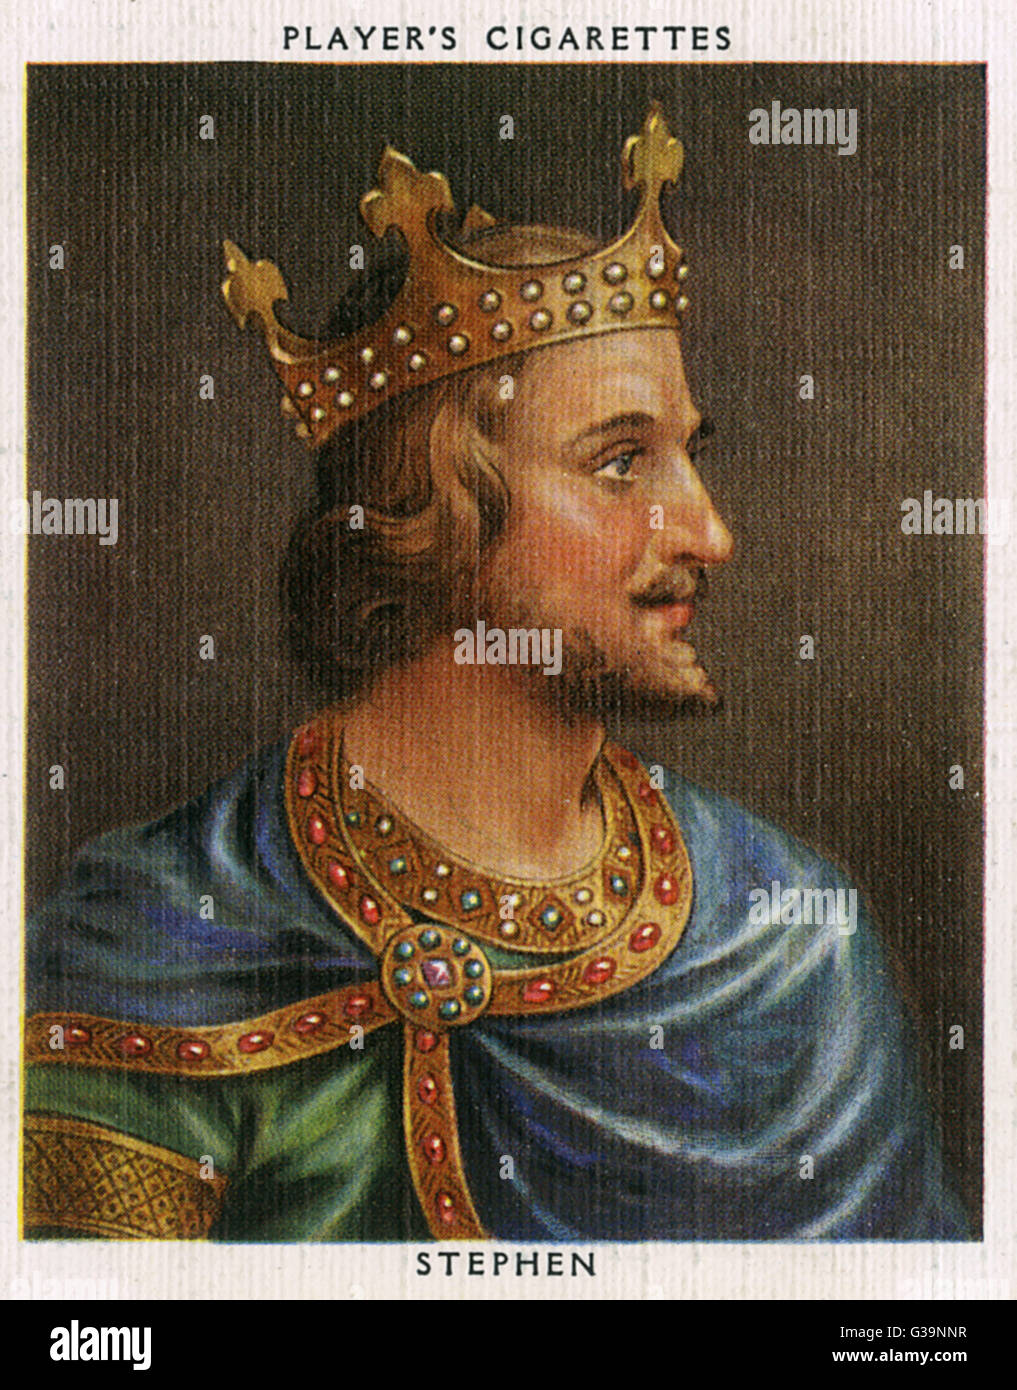 STEPHEN, KING OF ENGLAND  Reigned 1135 - 1154        Date: 1097? - 1154 - Stock Image